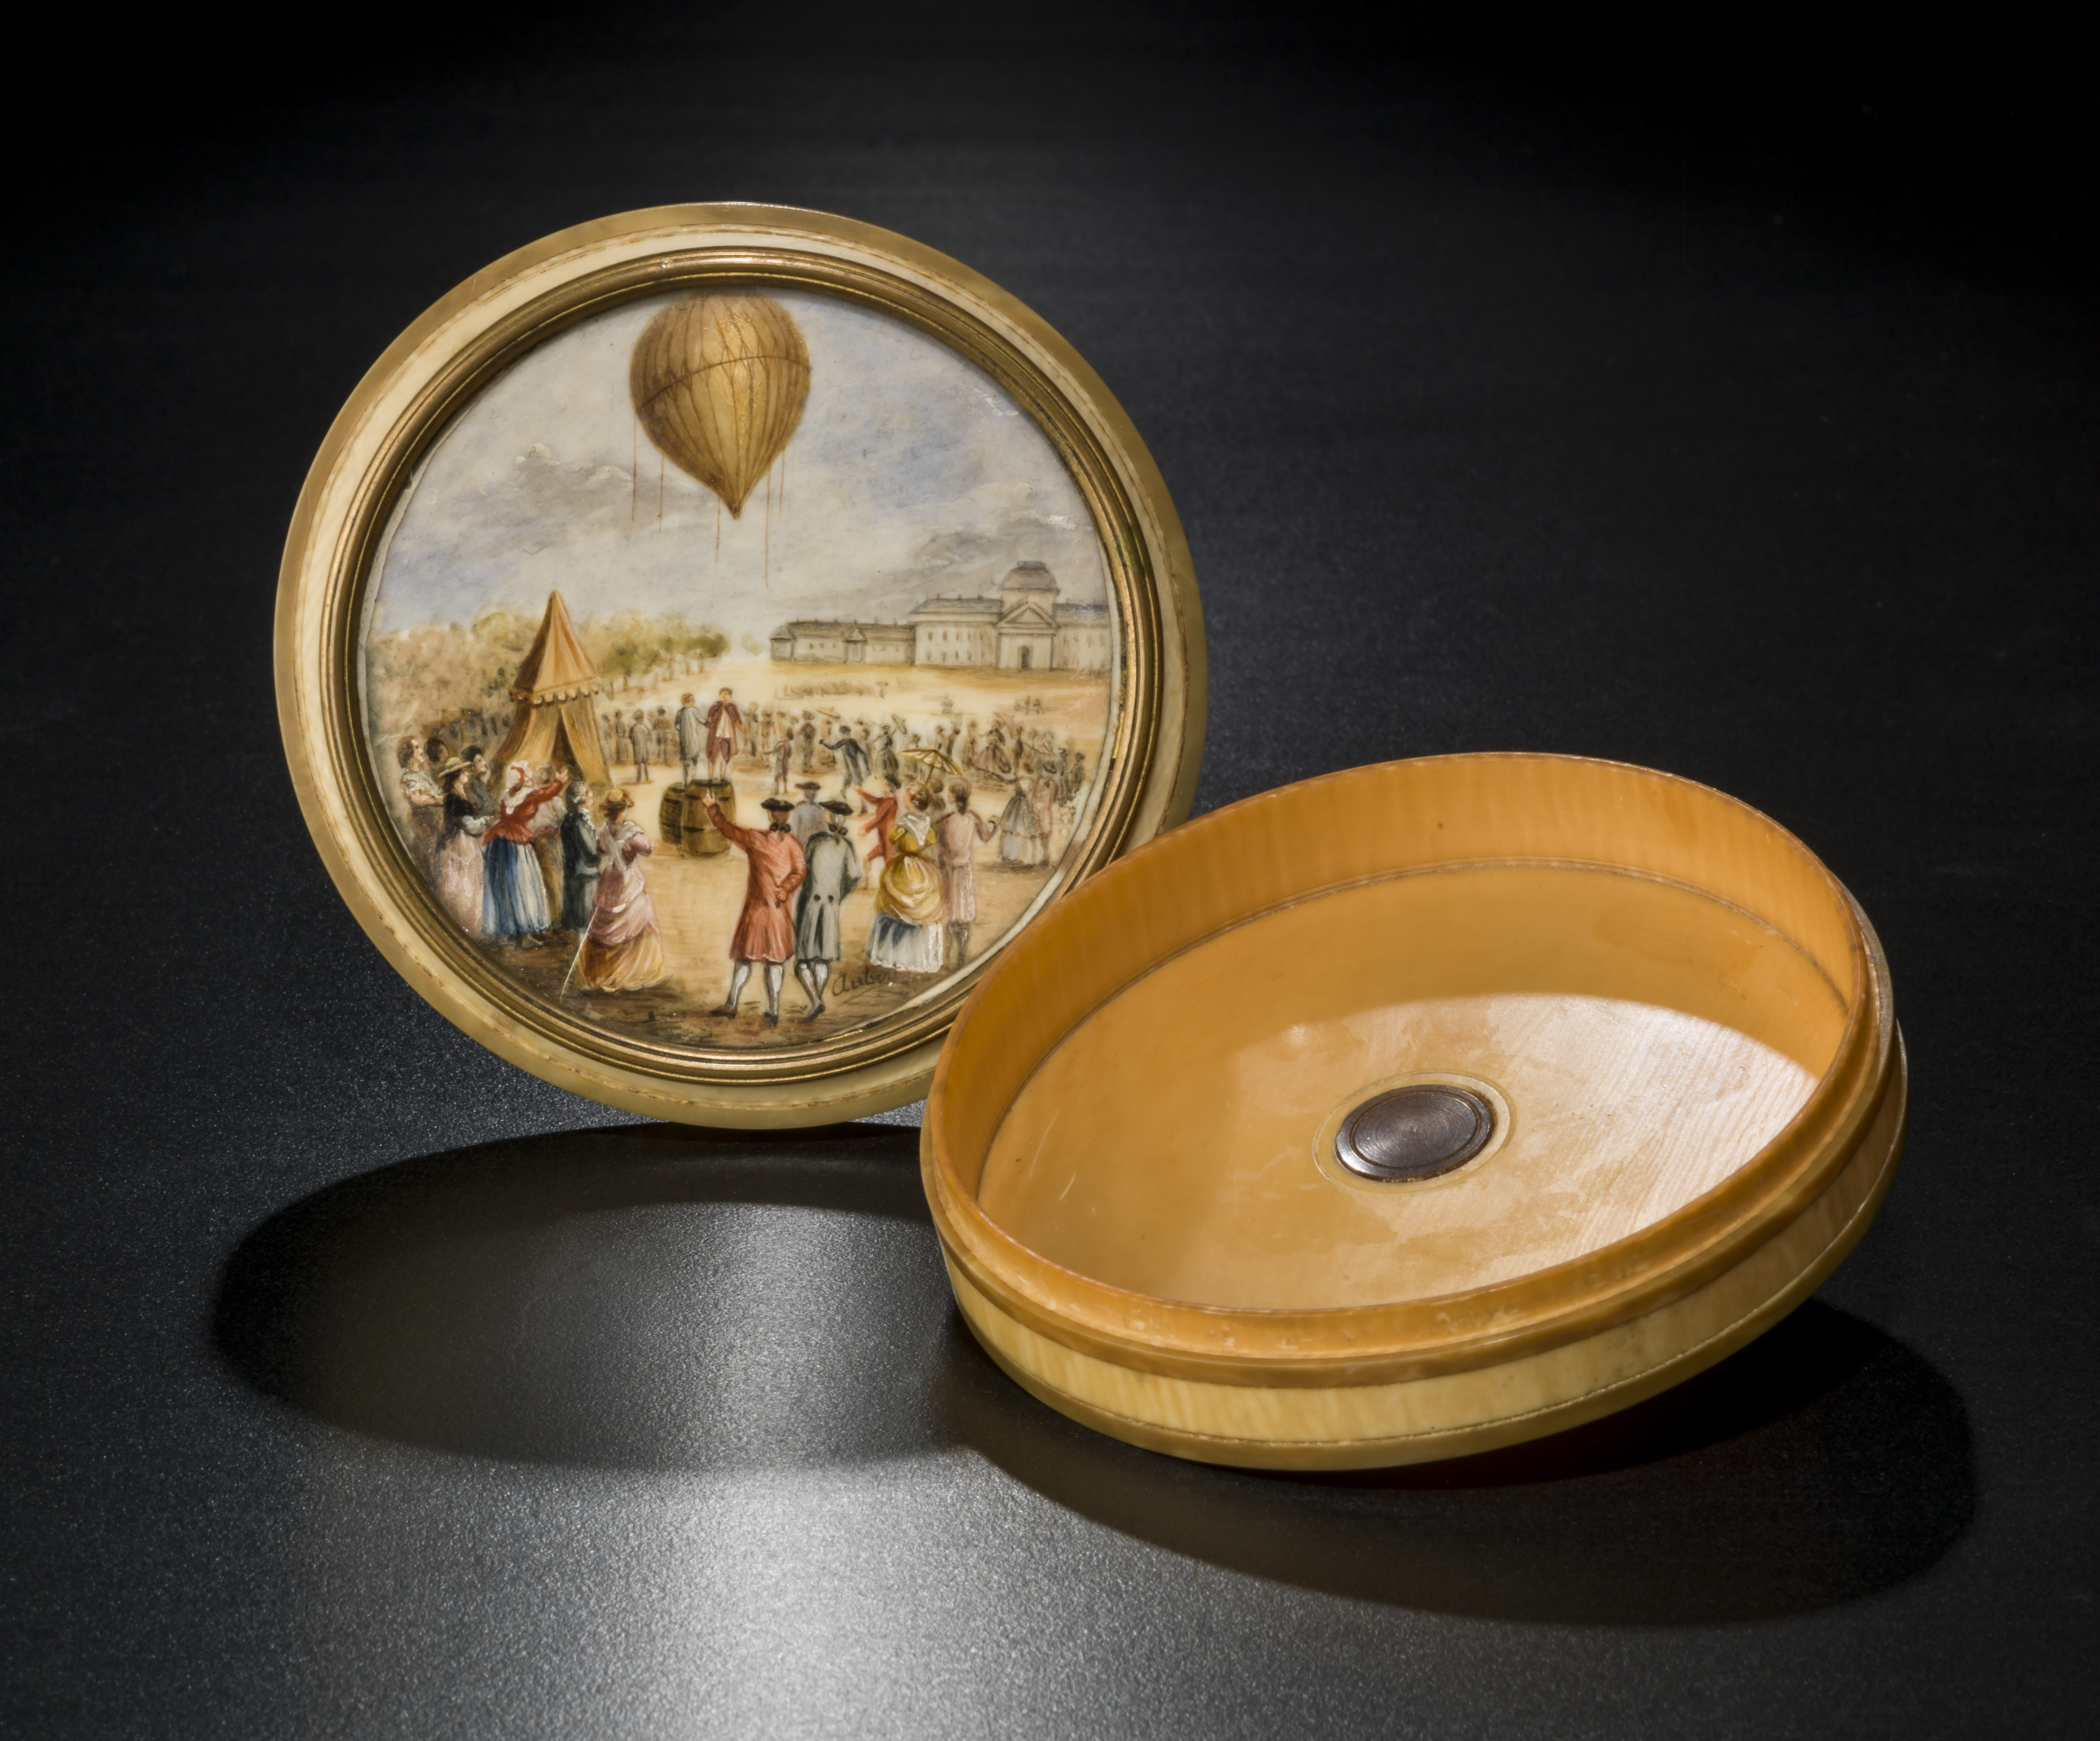 Ivory Snuff Box from the Kendall Collection